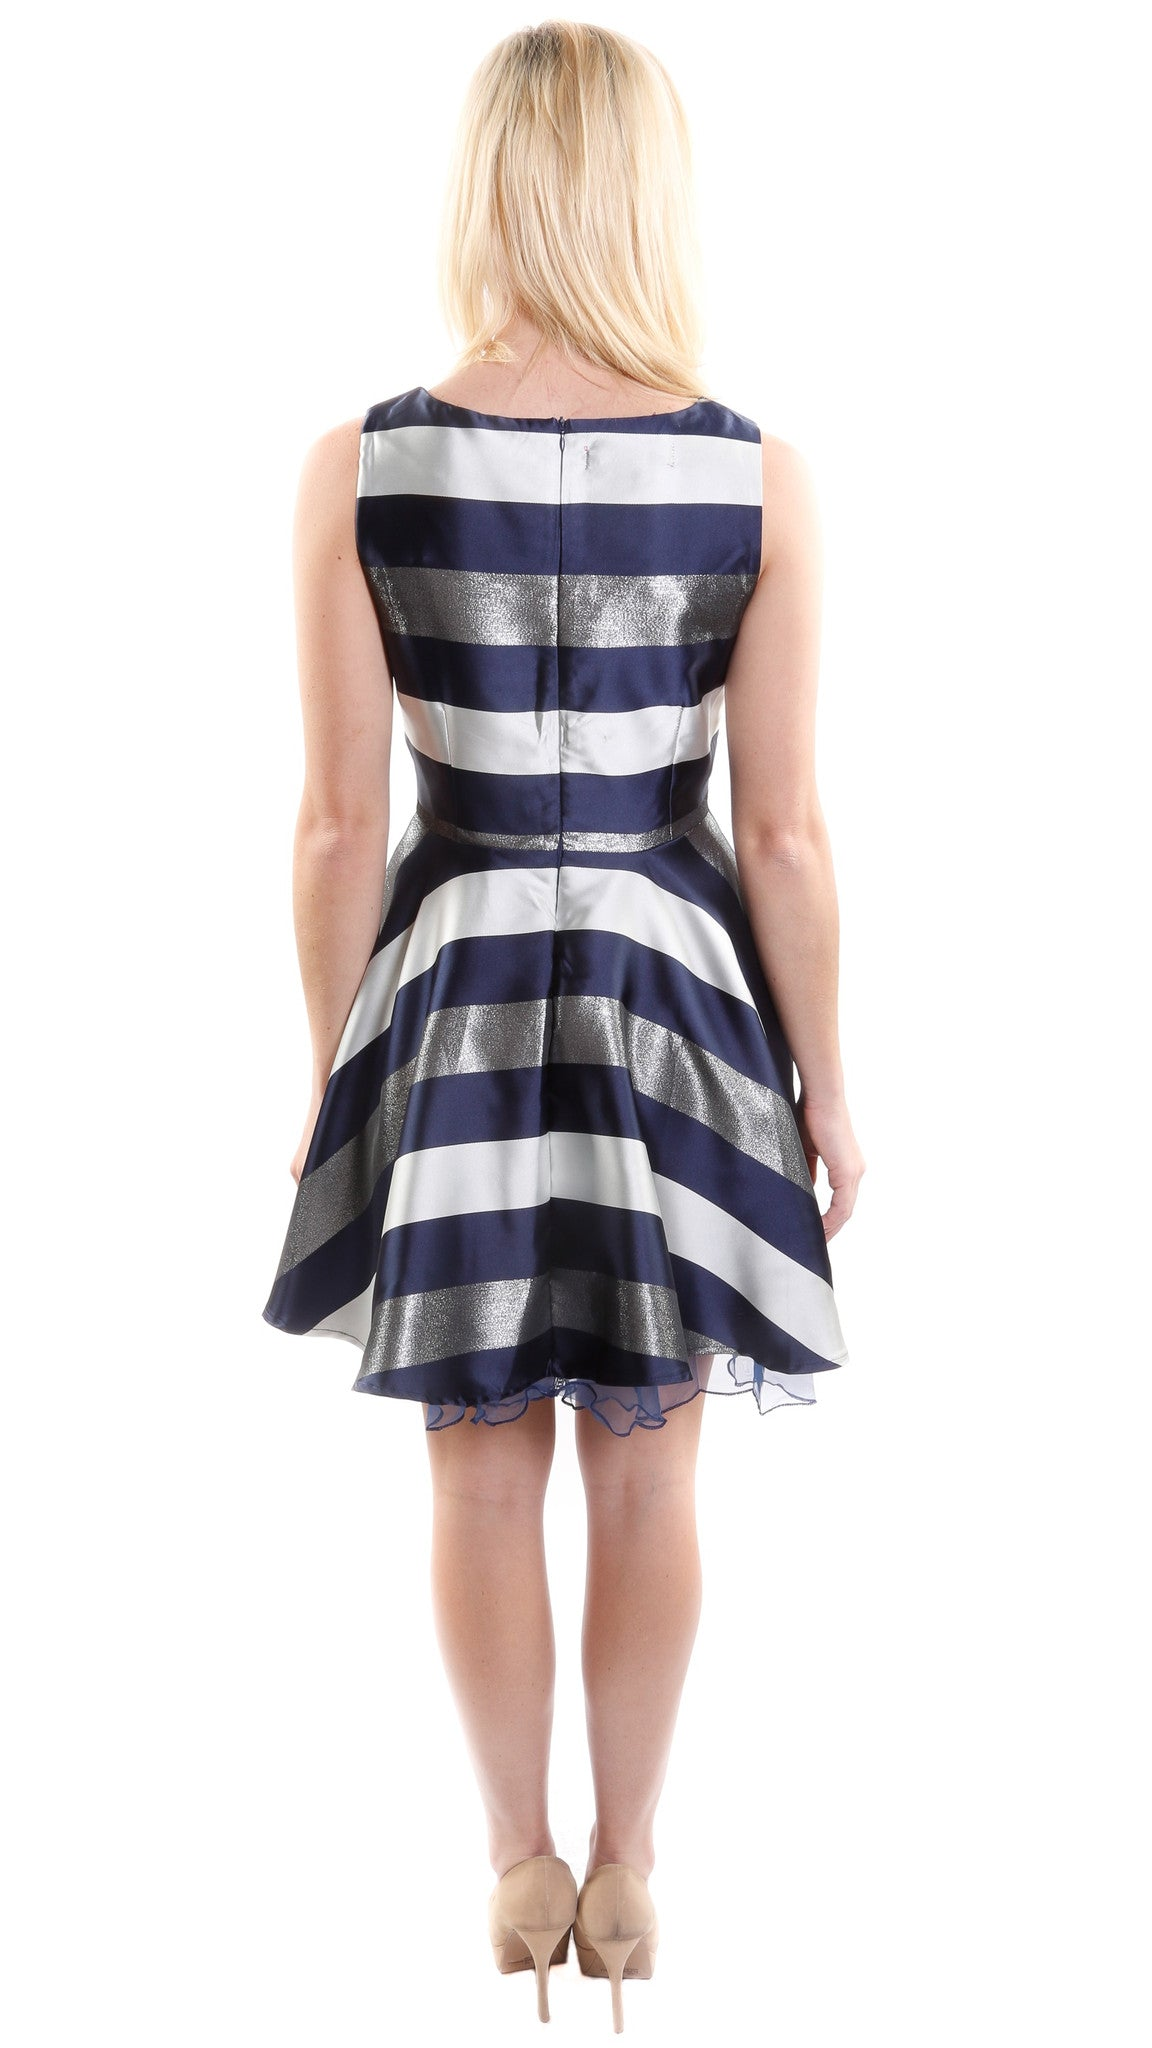 Sleeveless A-Line Cocktail Dress